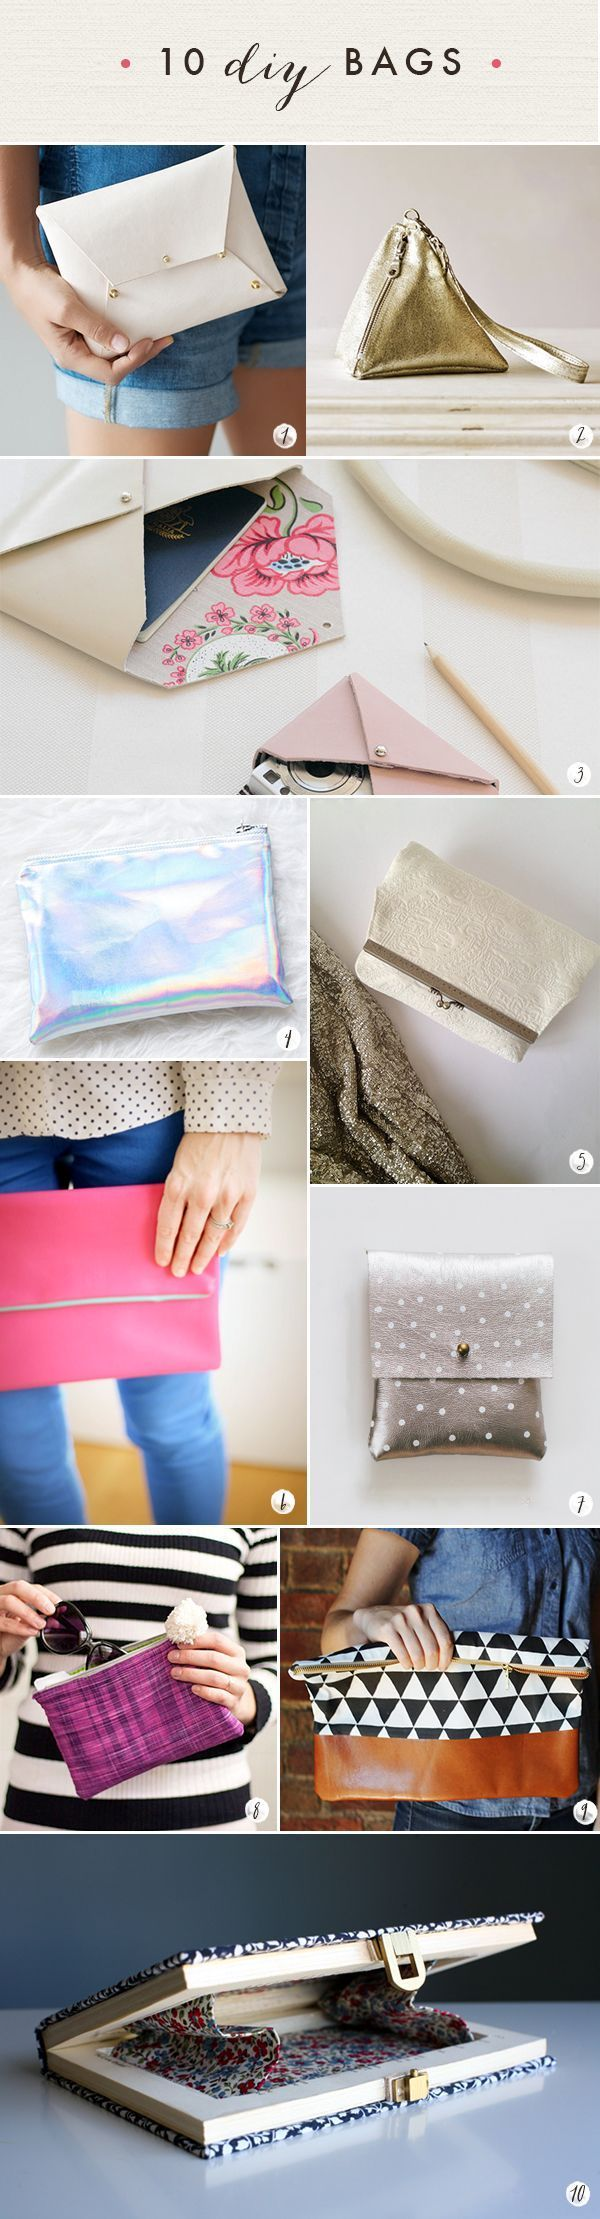 DIY Tutorials - Oh the lovely things: 60 DIY Accessories - Last Minute Gifts For Fashionistas